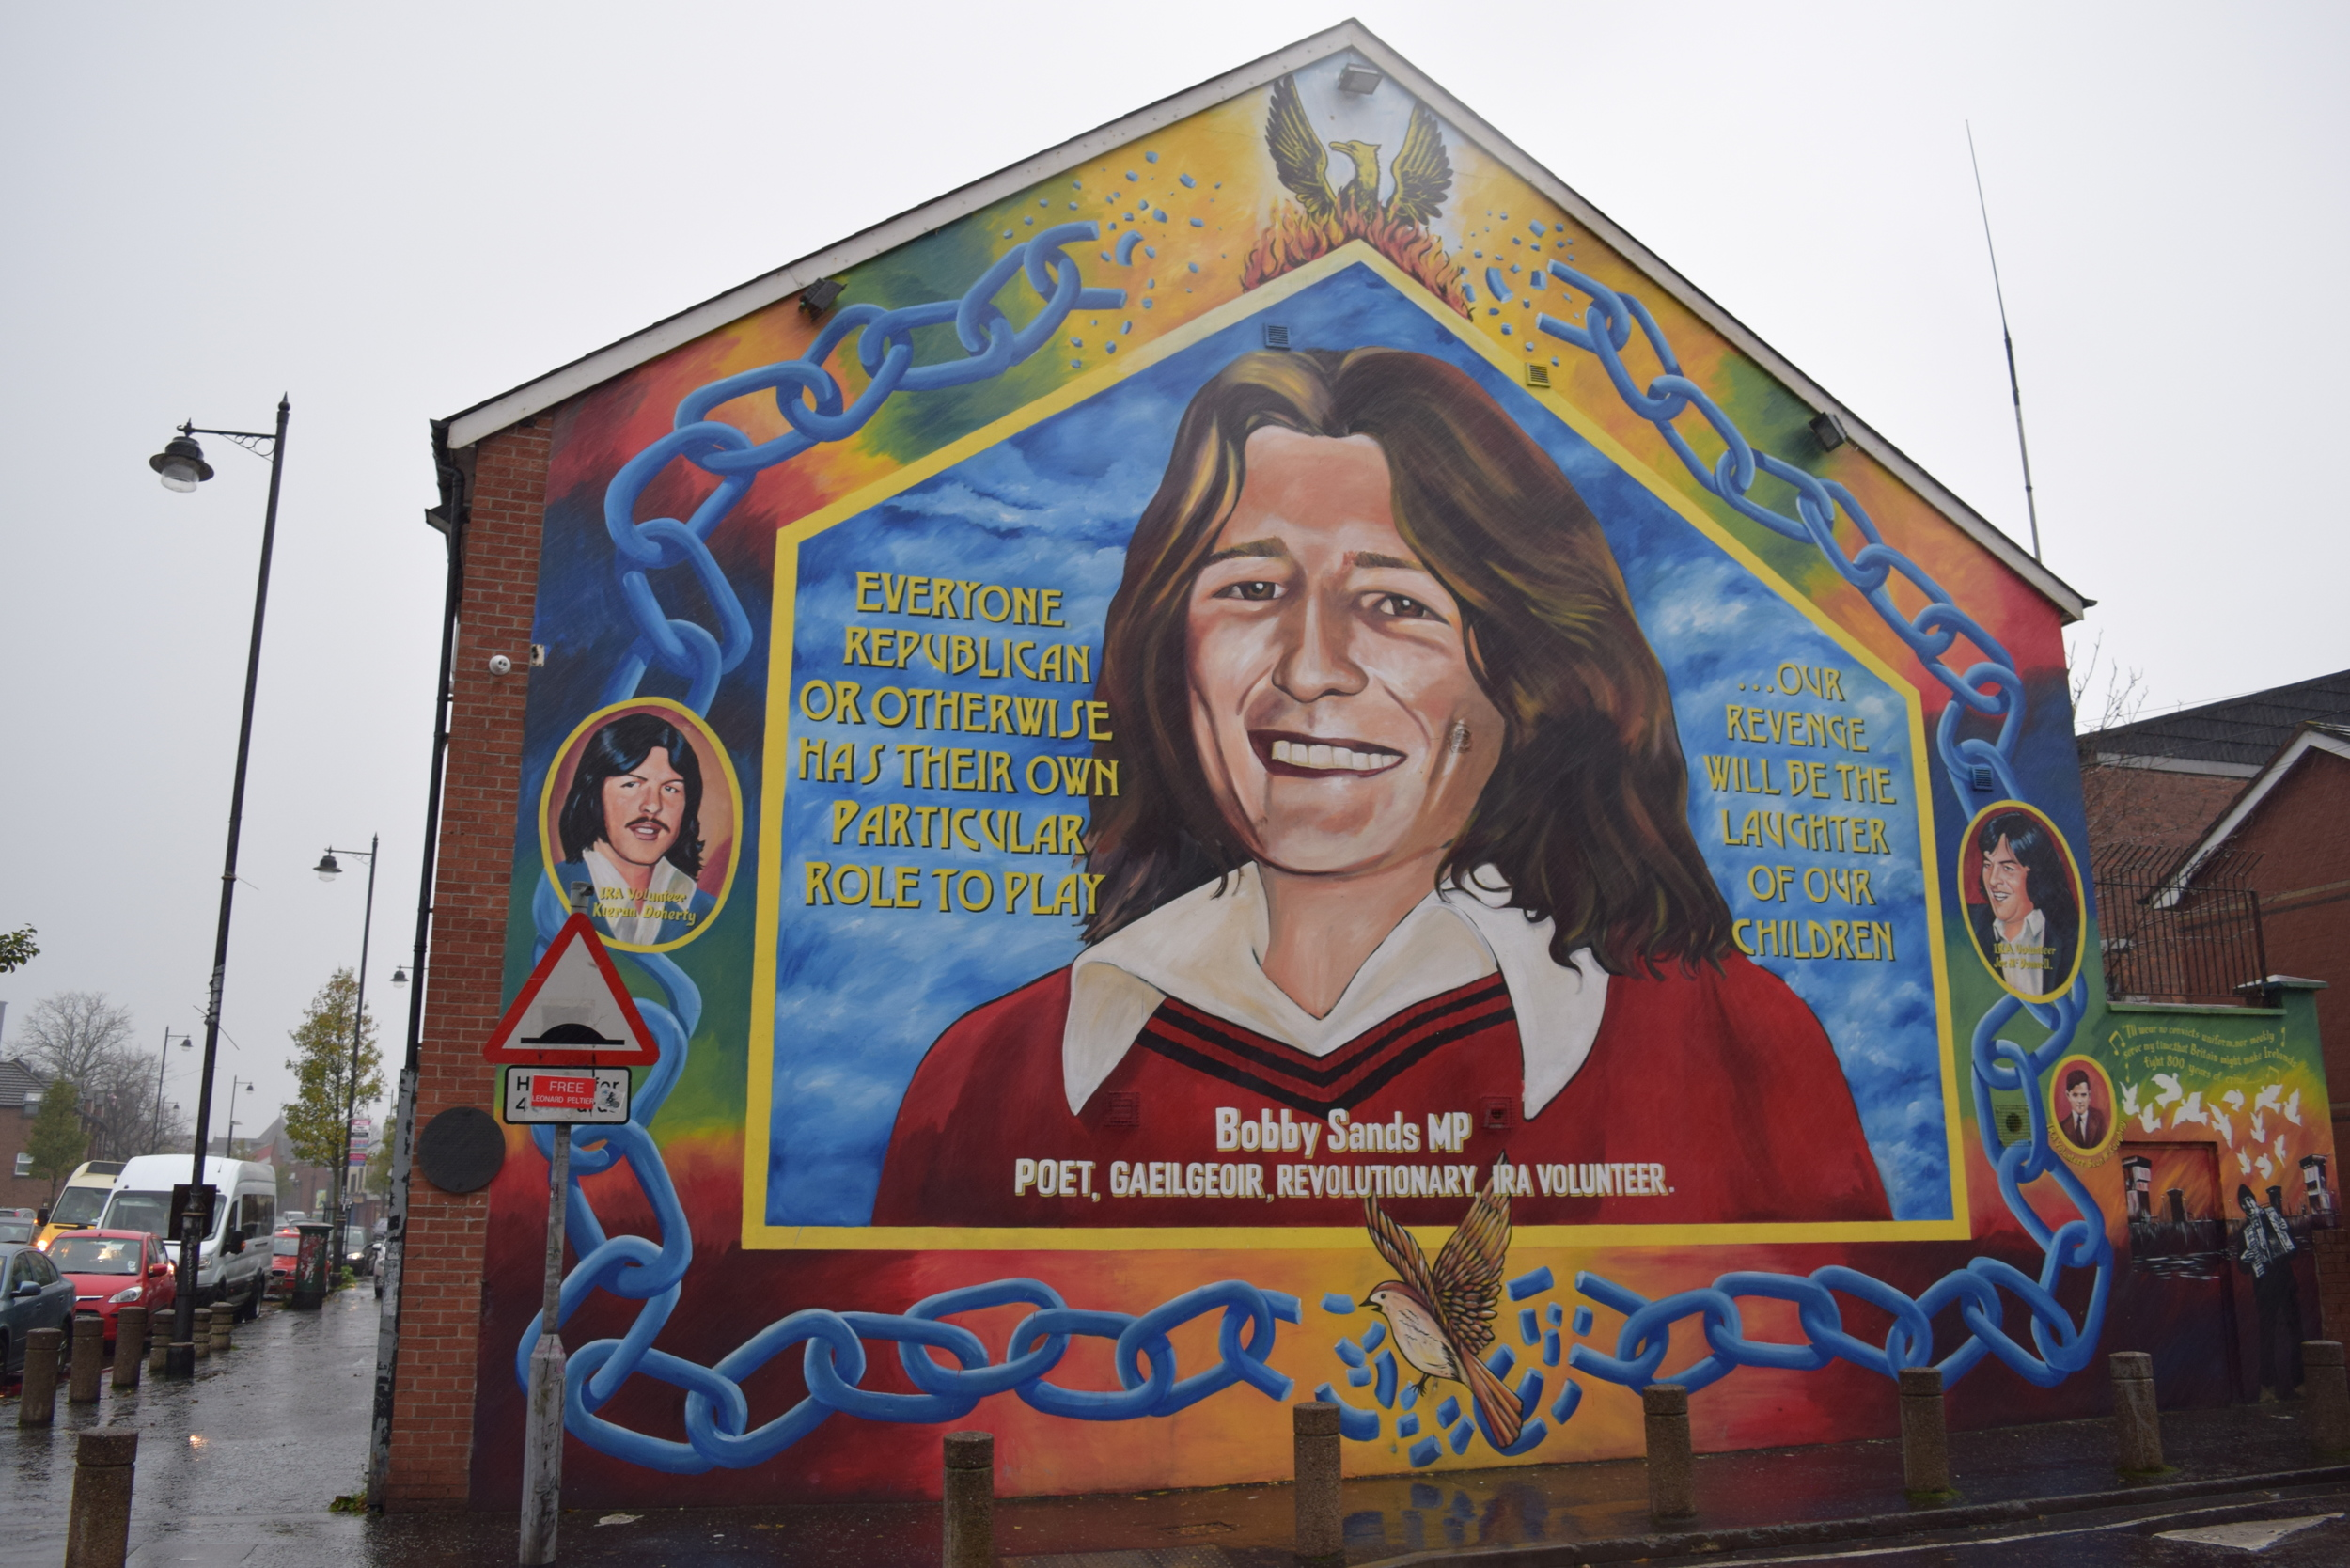 Bobby Sands was an IRA member serving a prison term at the Maze Prison who died after 66 days on hunger strike. During the strike he was elected to the British parliament.